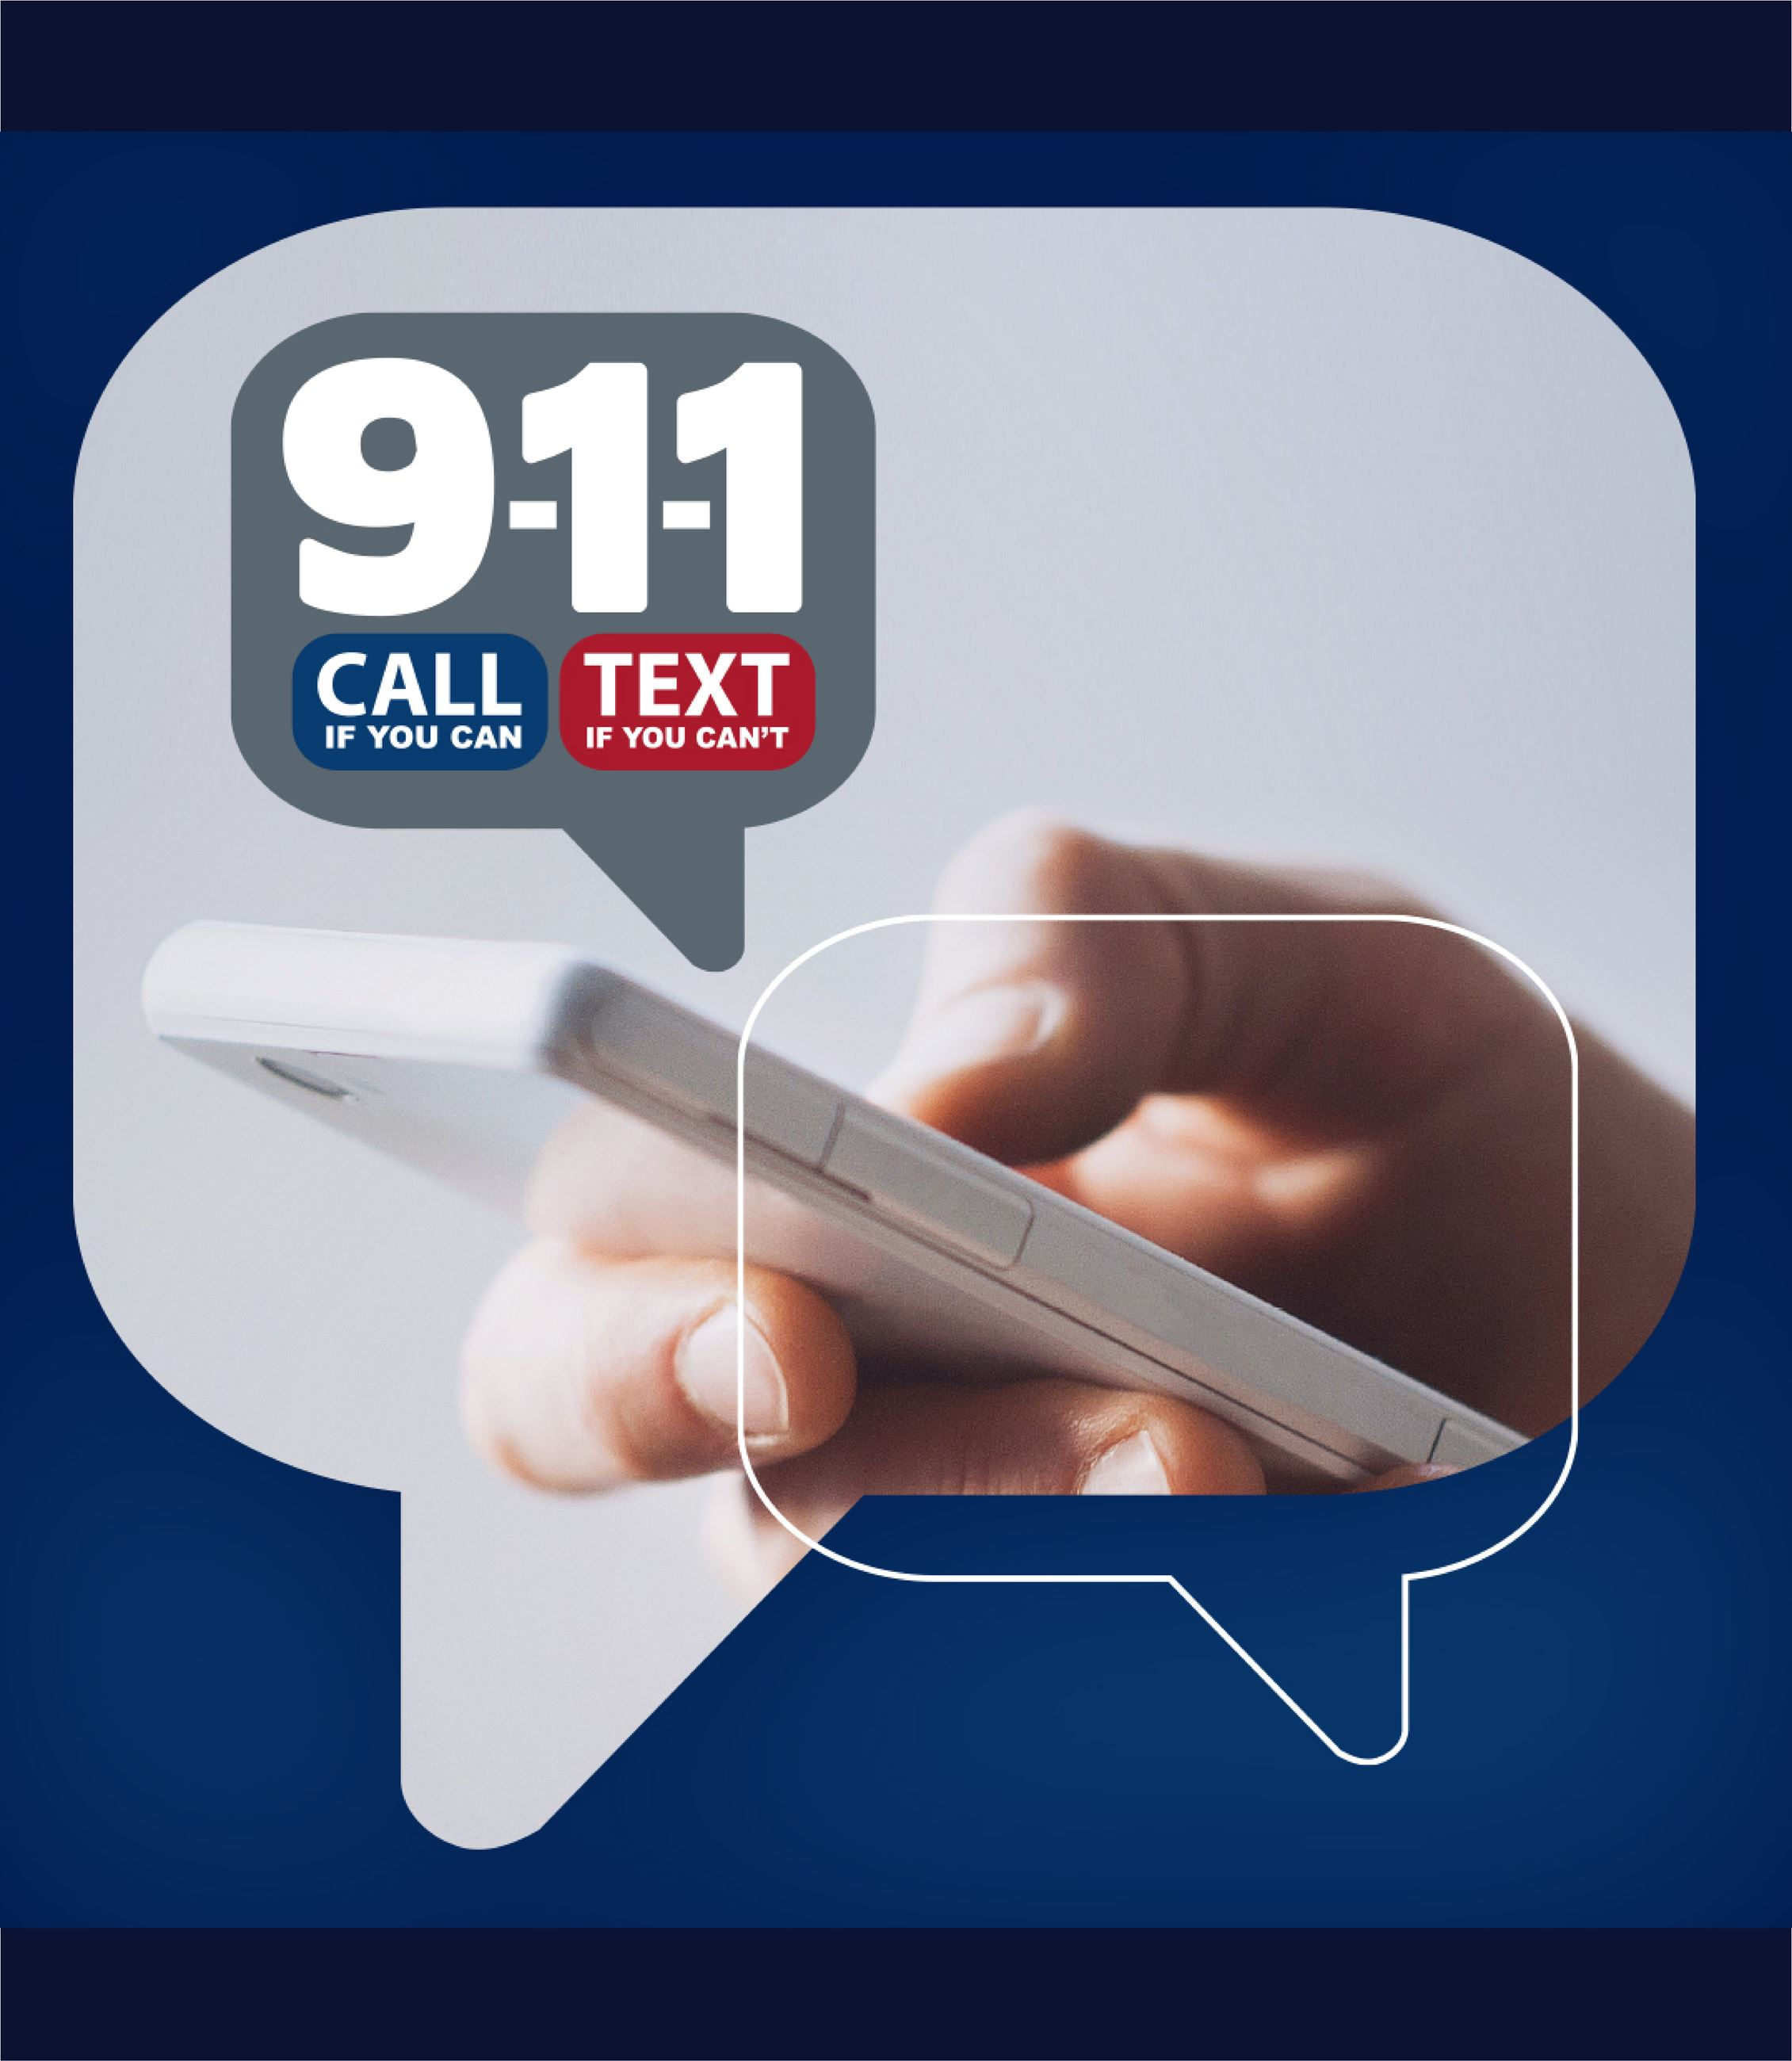 911 Call if you can text if you can't. Image of a person send a text message